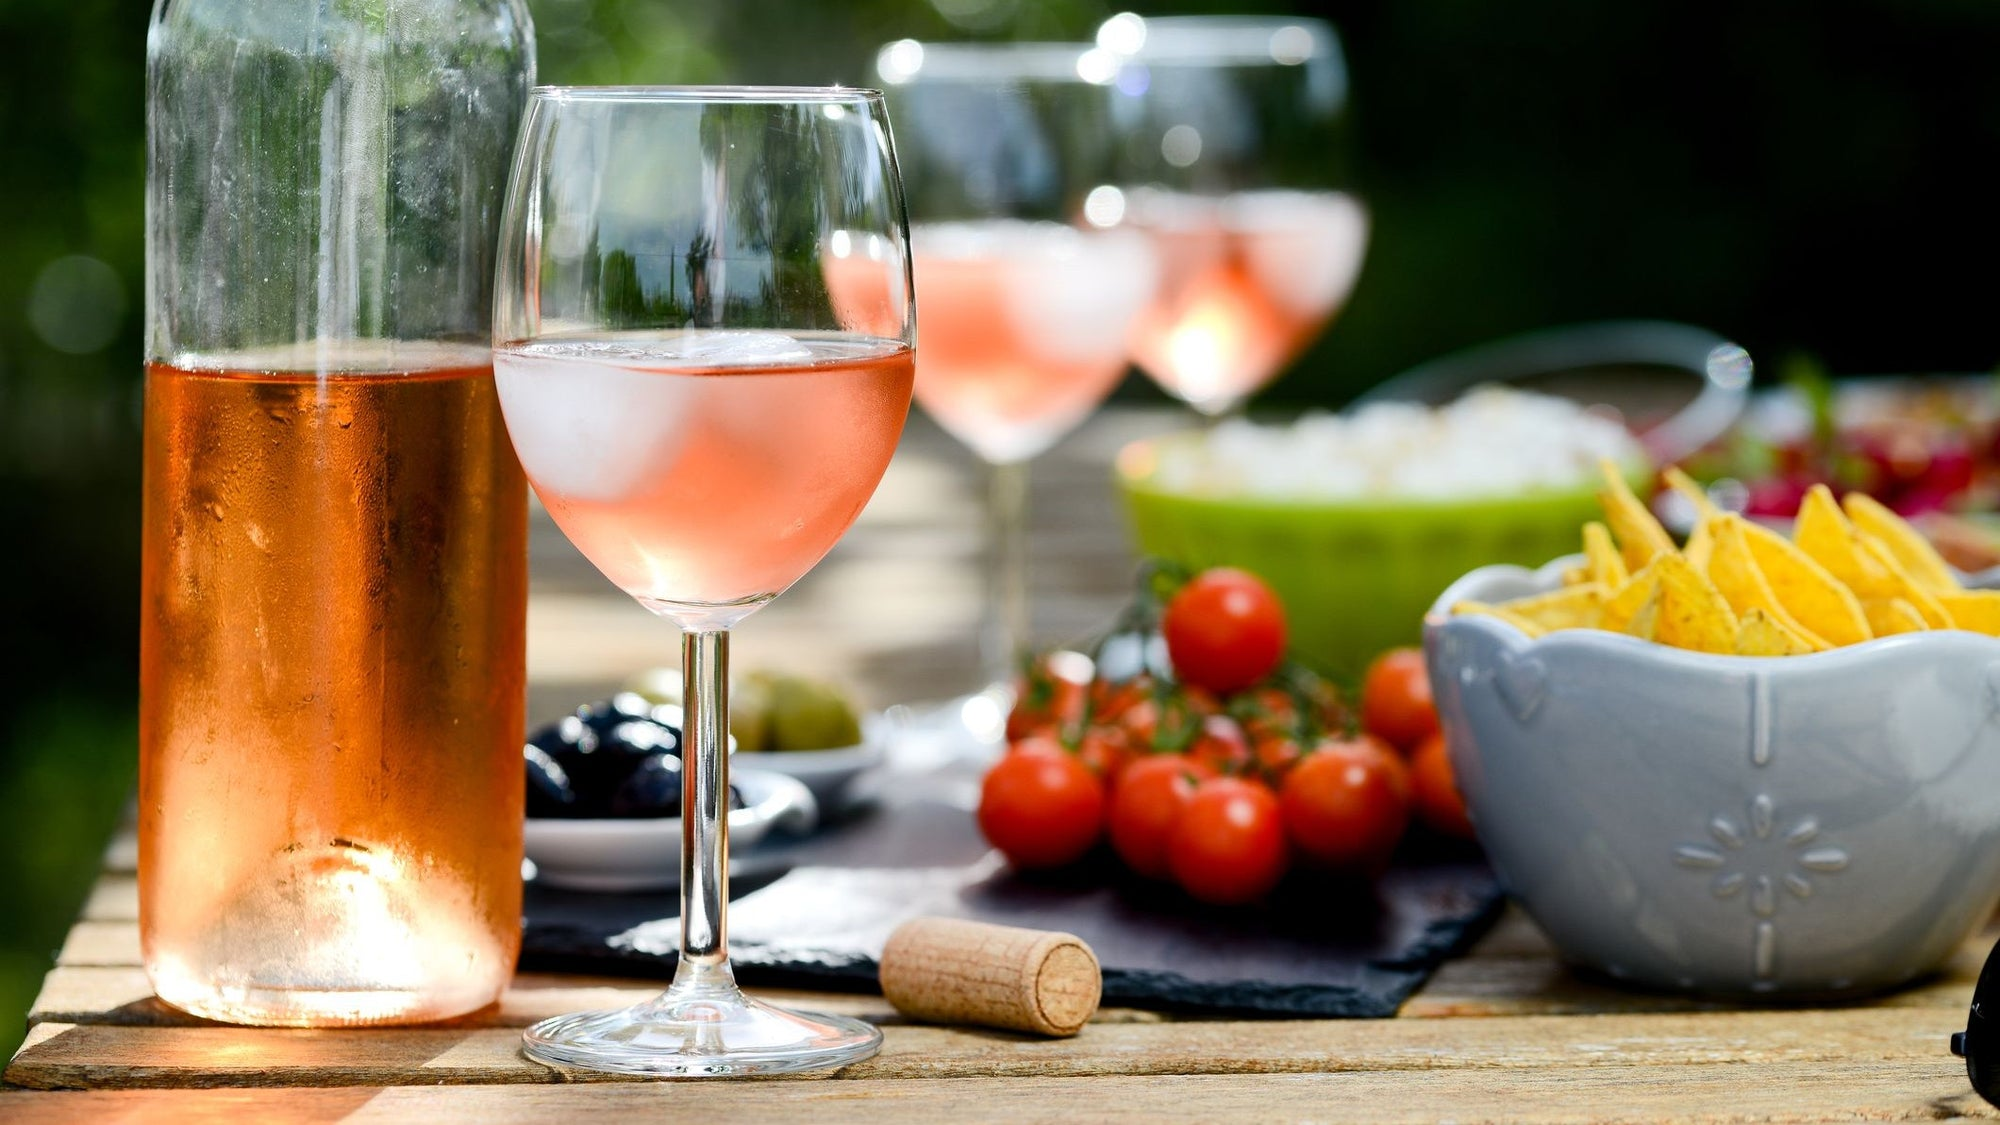 Summer Wines: What to Drink This Season